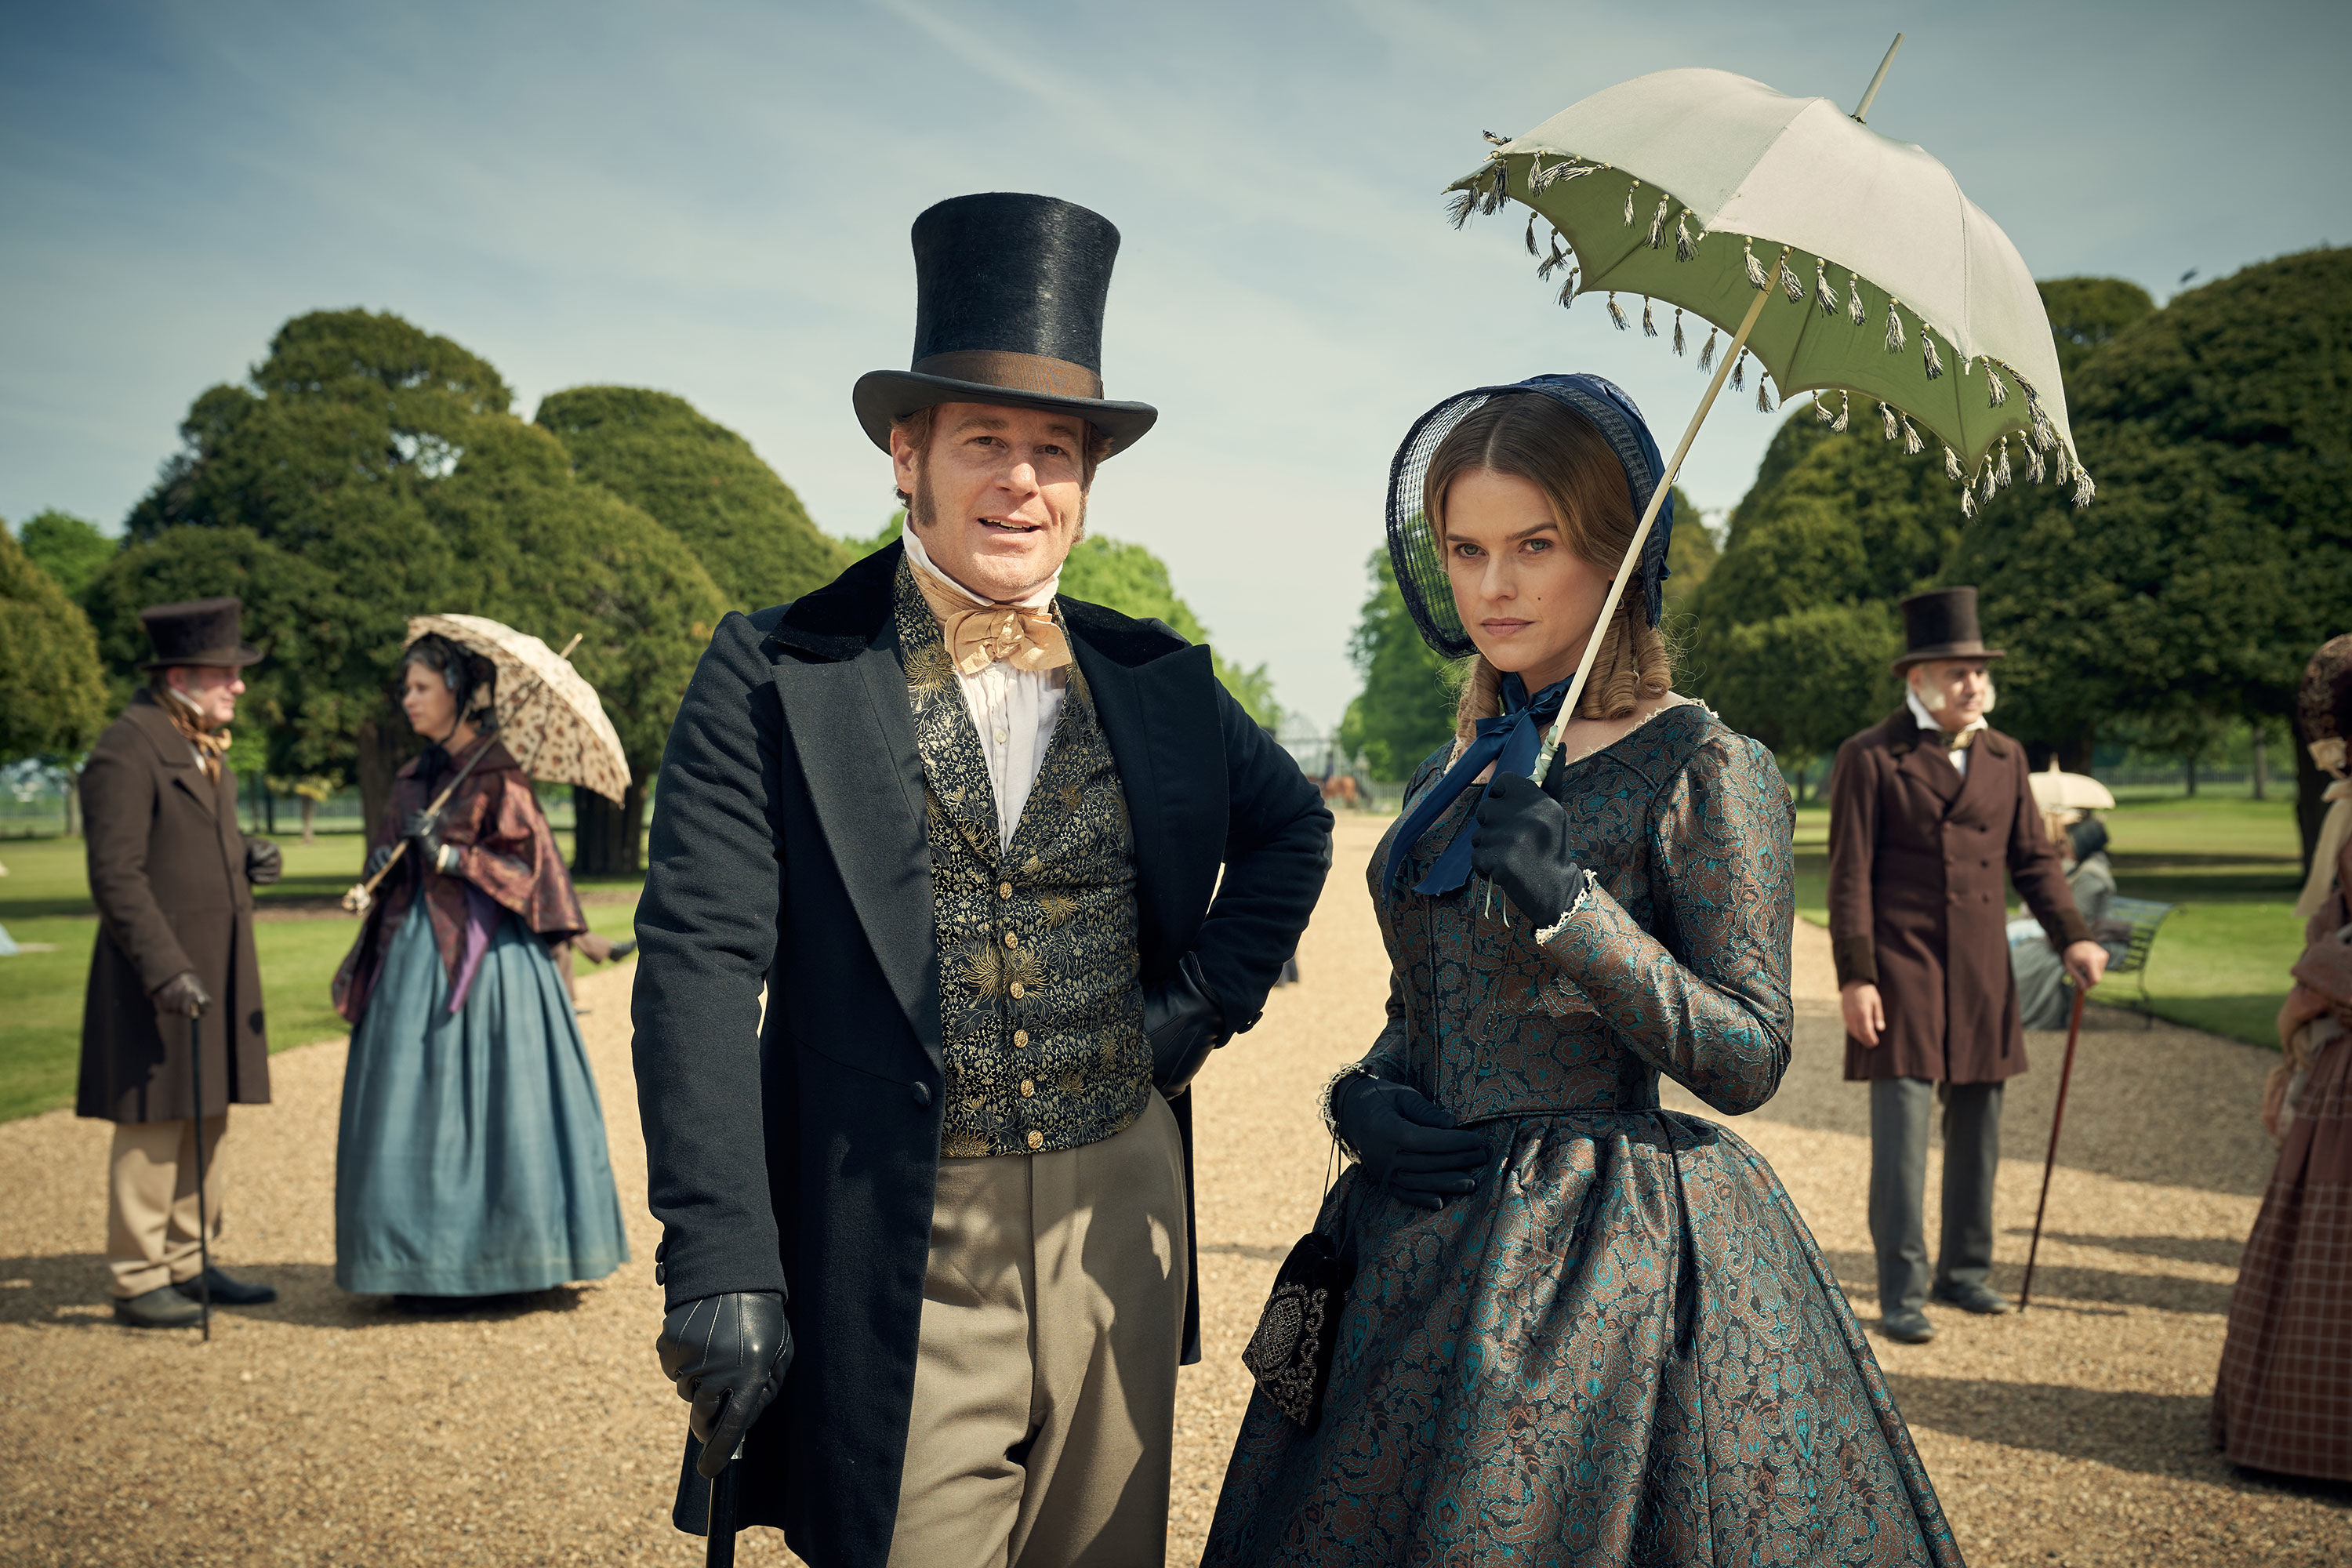 First Look at Downton Abbey Creator Julian Fellowes' New Series Belgravia